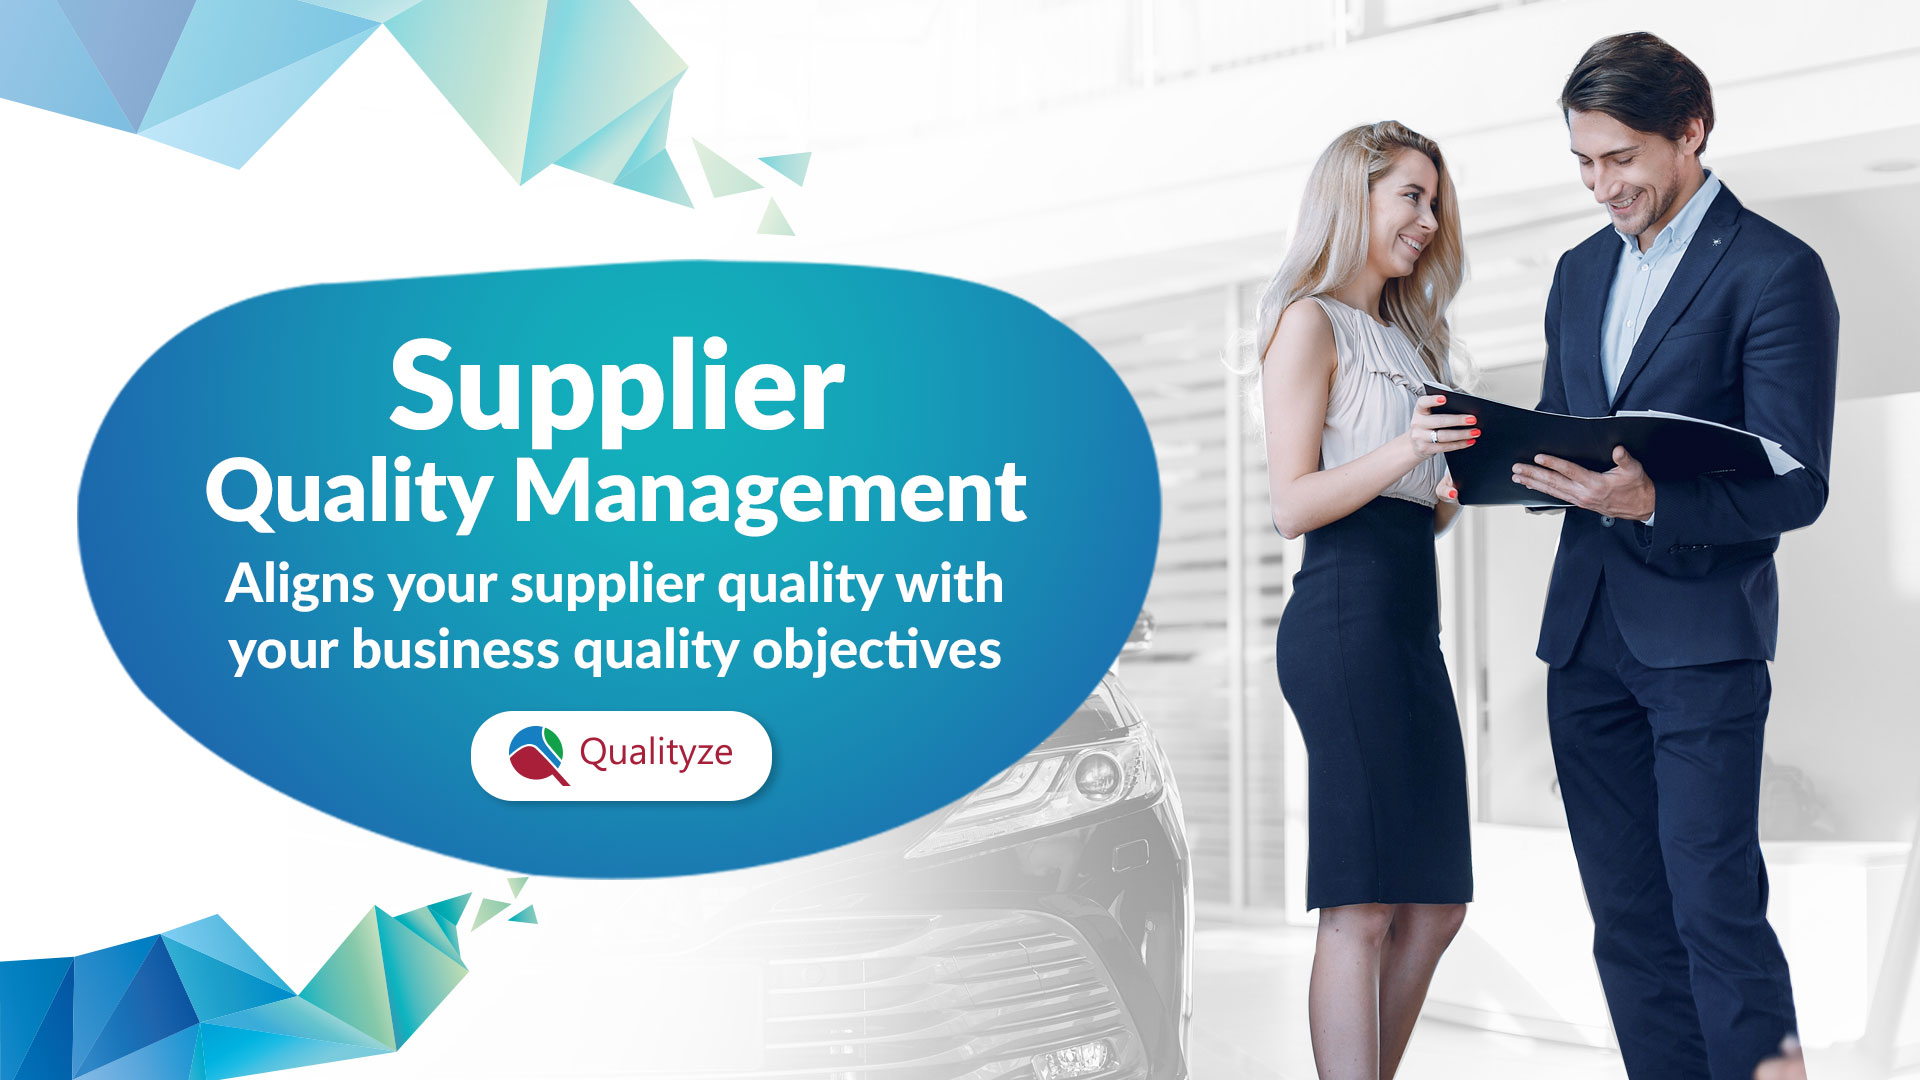 Supplier Quality Managment Solutions